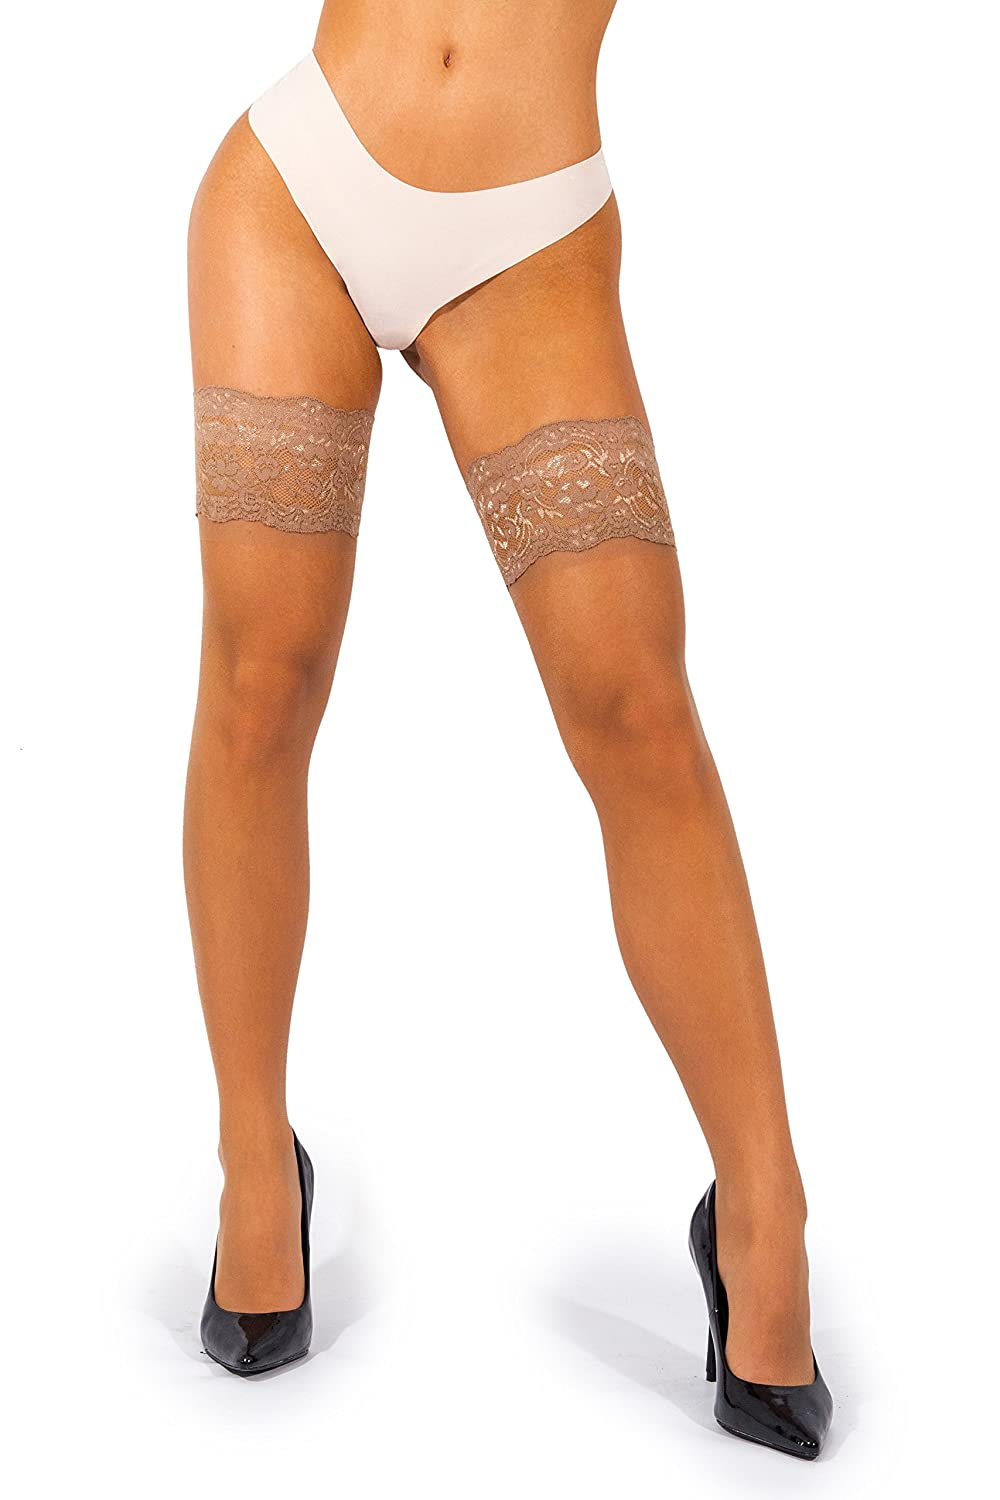 42573f257 sofsy Lace Thigh High Sheer Hold Up Nylon Pantyhose Stockings Deep ...